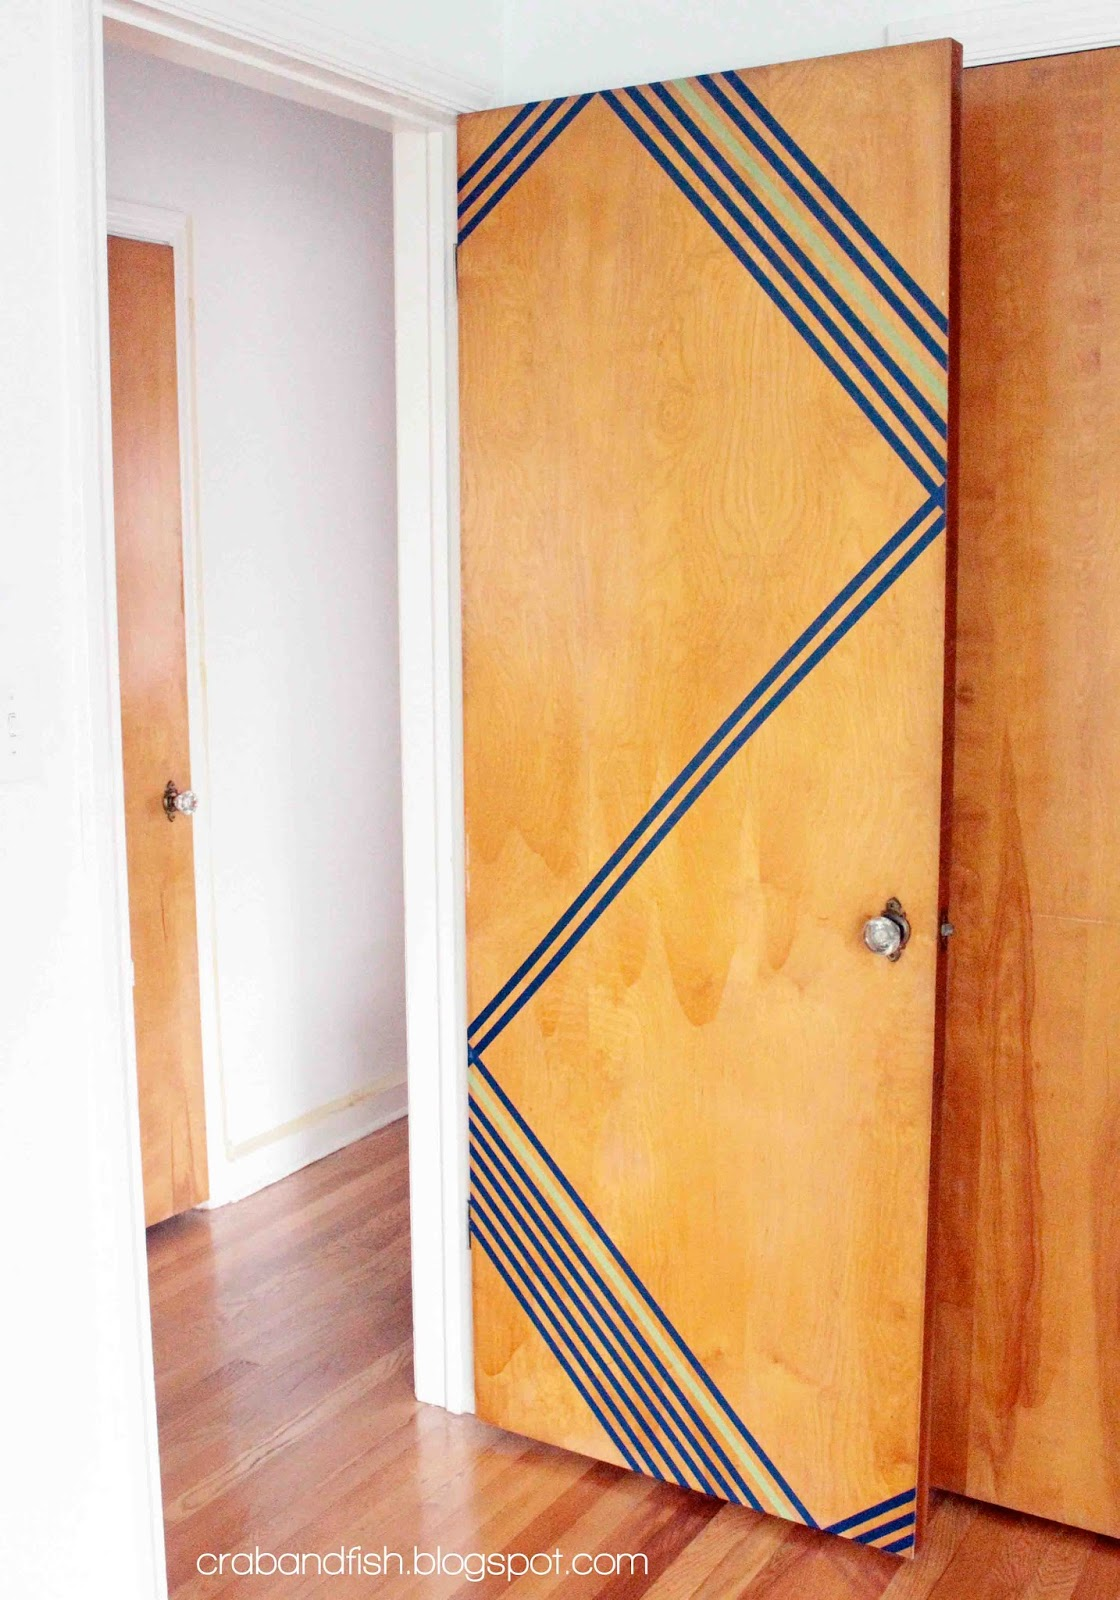 Dorm Room Ideas: DIY Room Decor - Door Designs